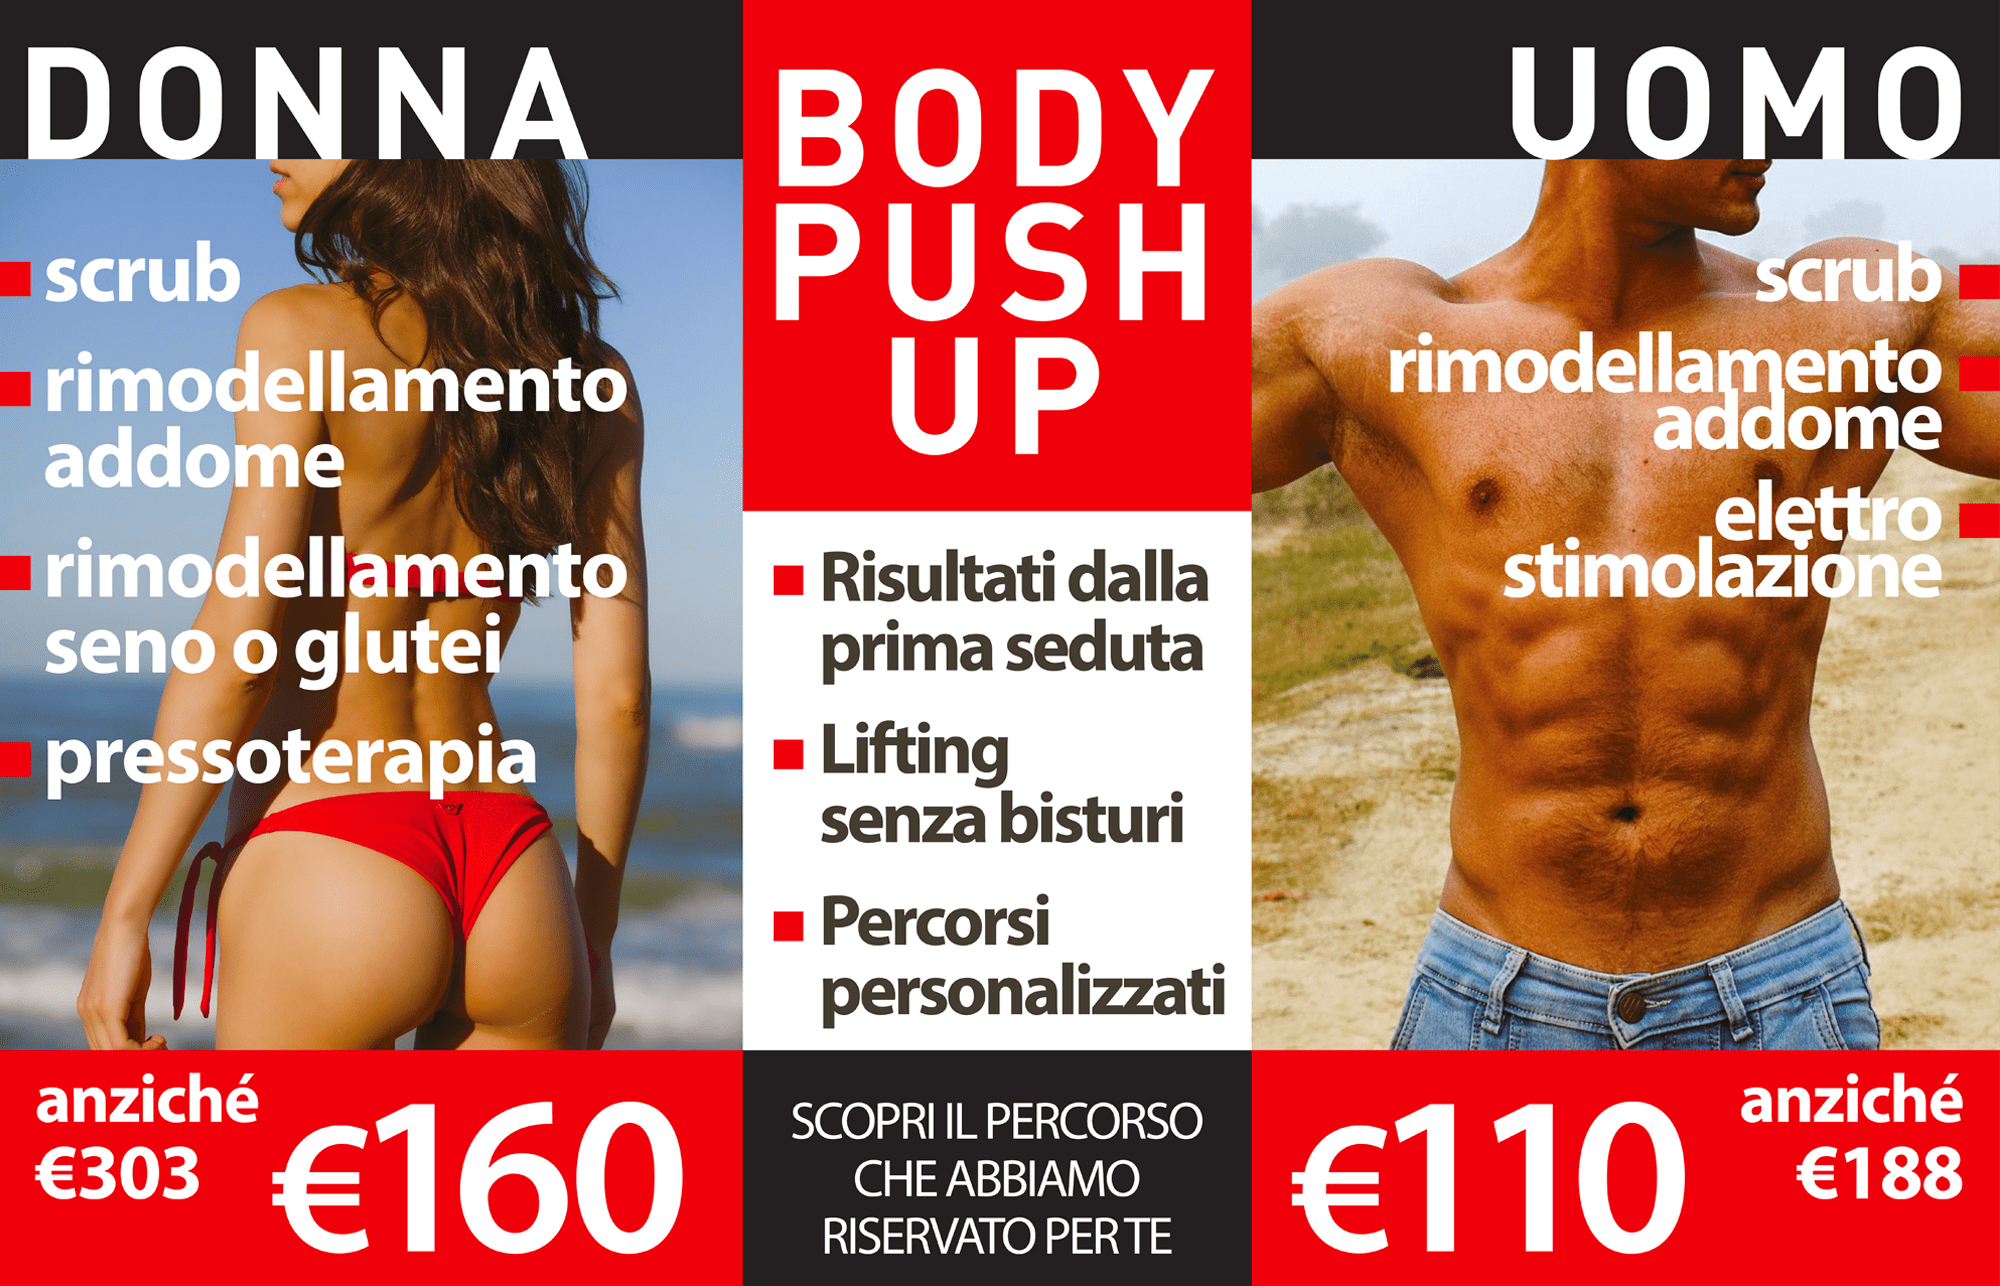 BODY PUSH UP